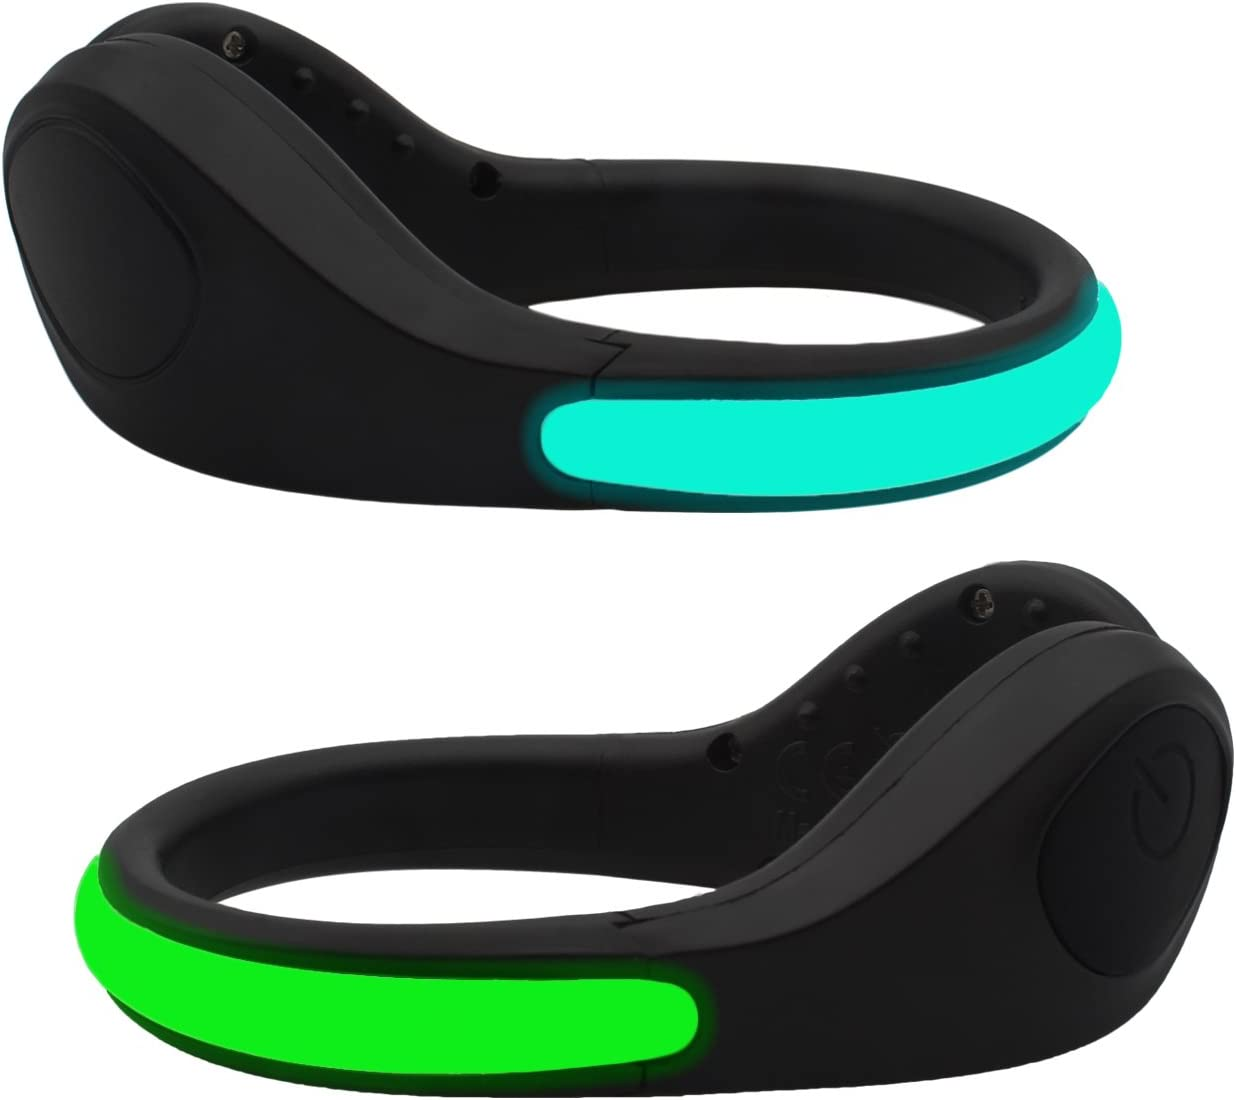 be-seen blinking safety Light Clip on clothing  Running Bike Cycling Jogging